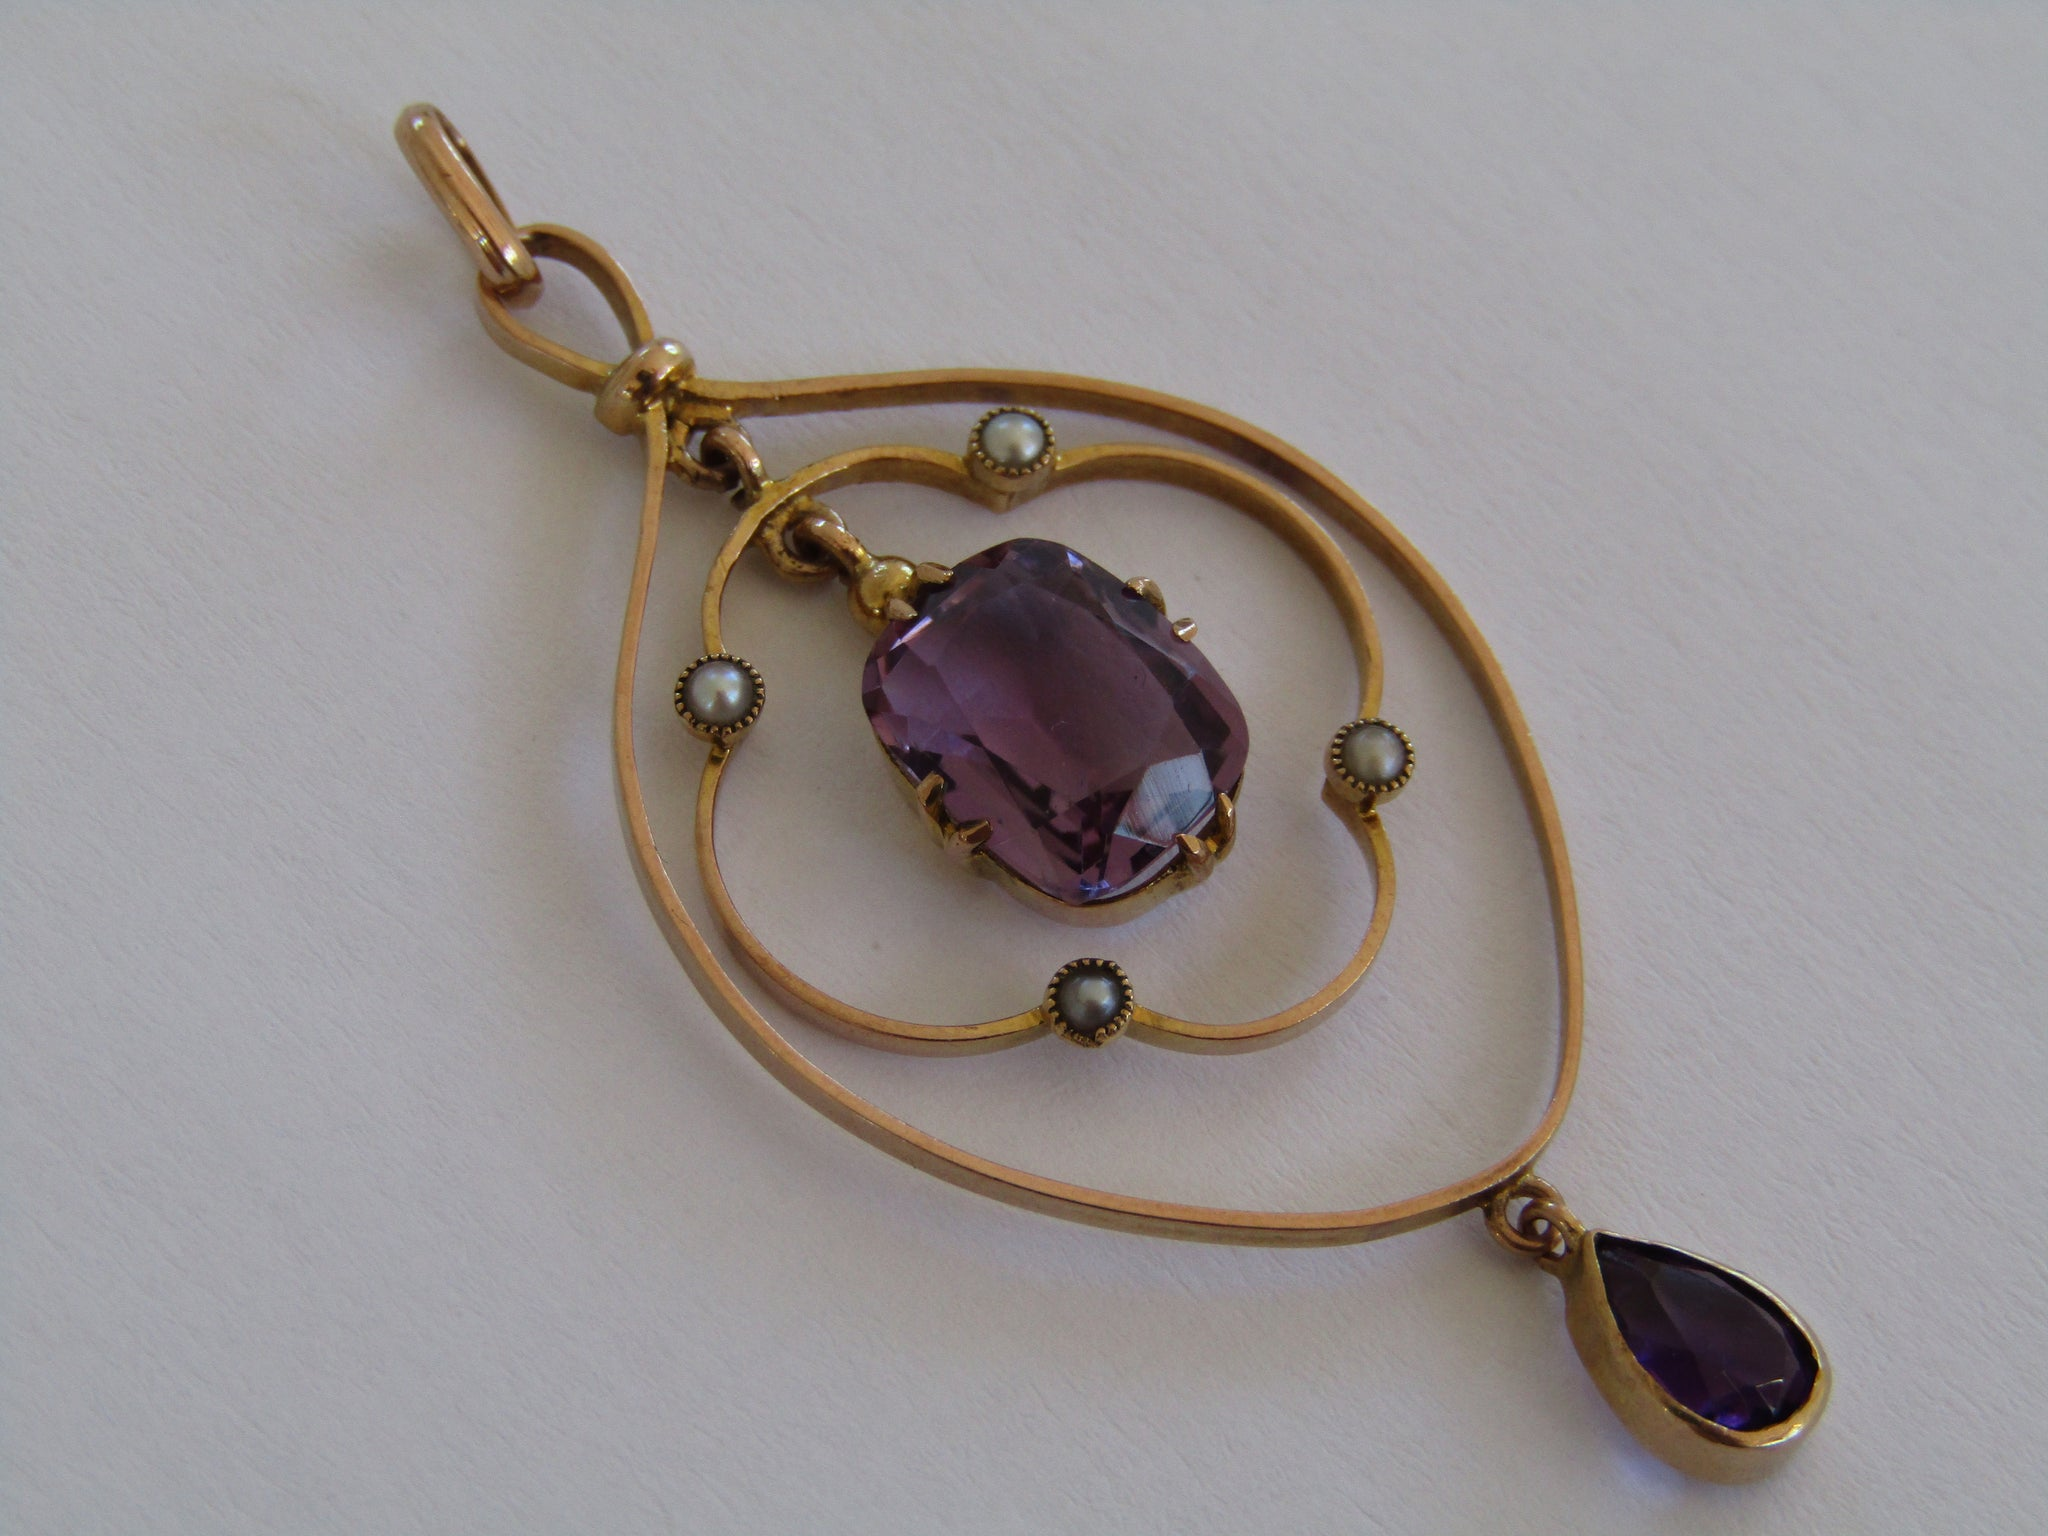 A 9kt gold Edwardian amethyst and seed pearl pendant